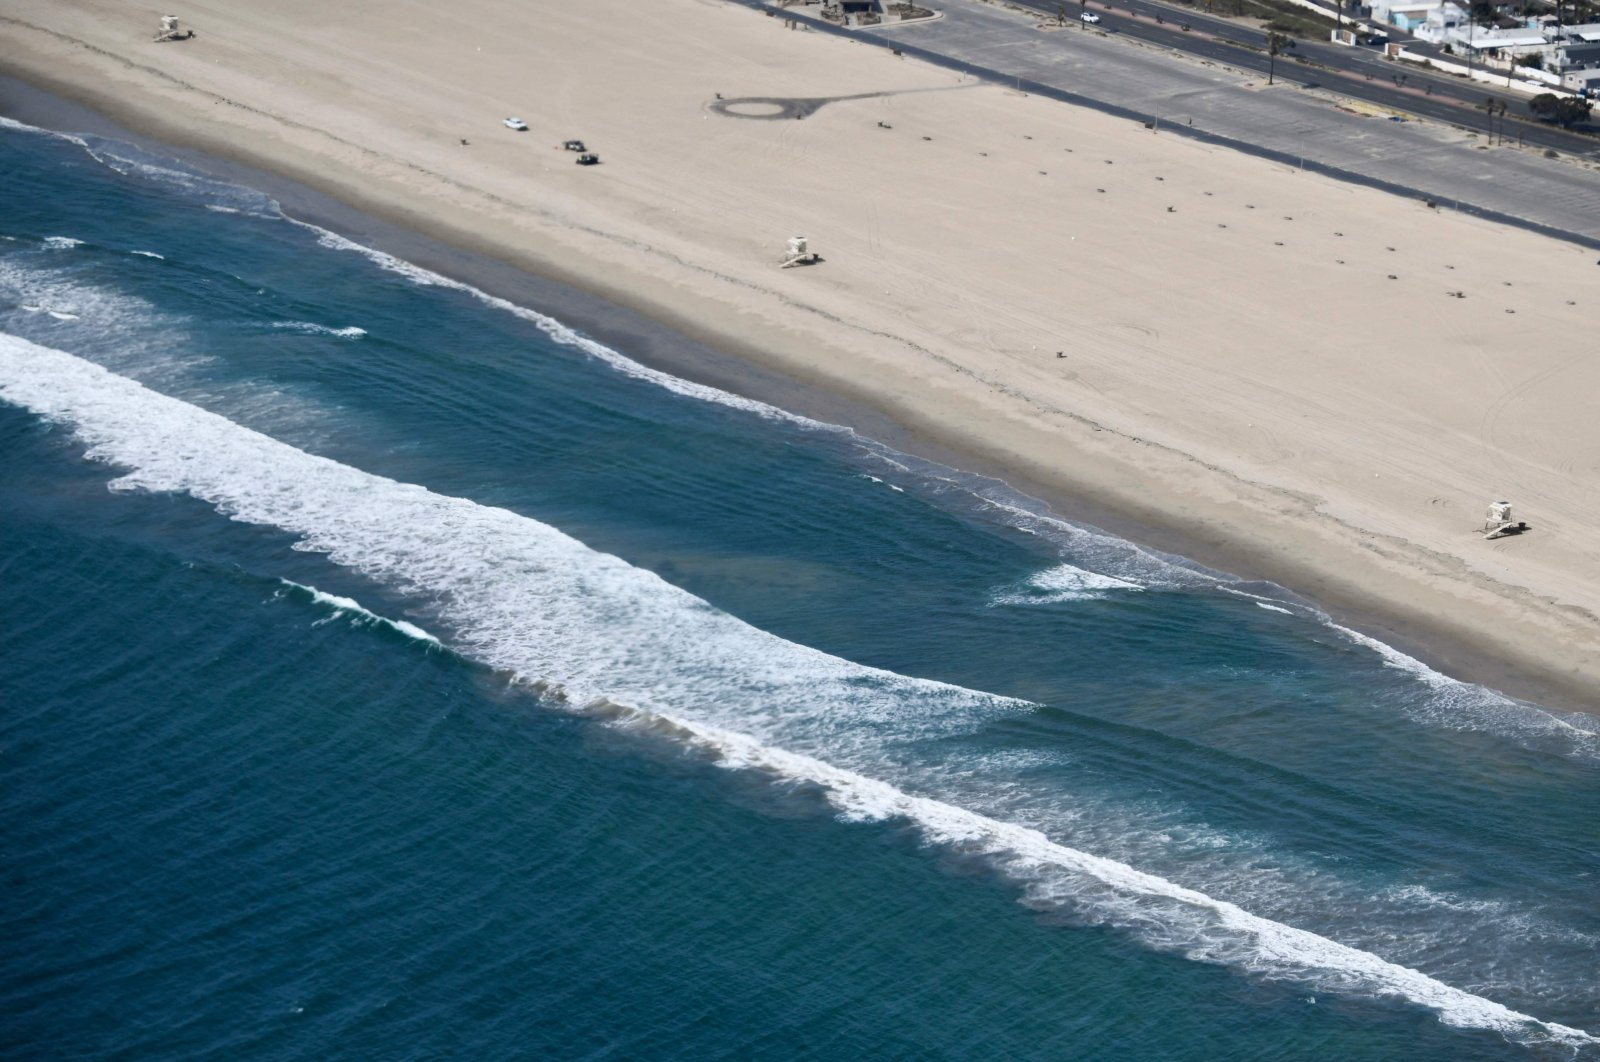 Closed lifeguard towers and mostly empty coastline are seen from a U.S. Coast Guard HC-27J Spartan aircraft during a media flight after an oil spill in the Pacific Ocean in Orange County, California, U.S., Oct. 6, 2021. (AFP Photo)